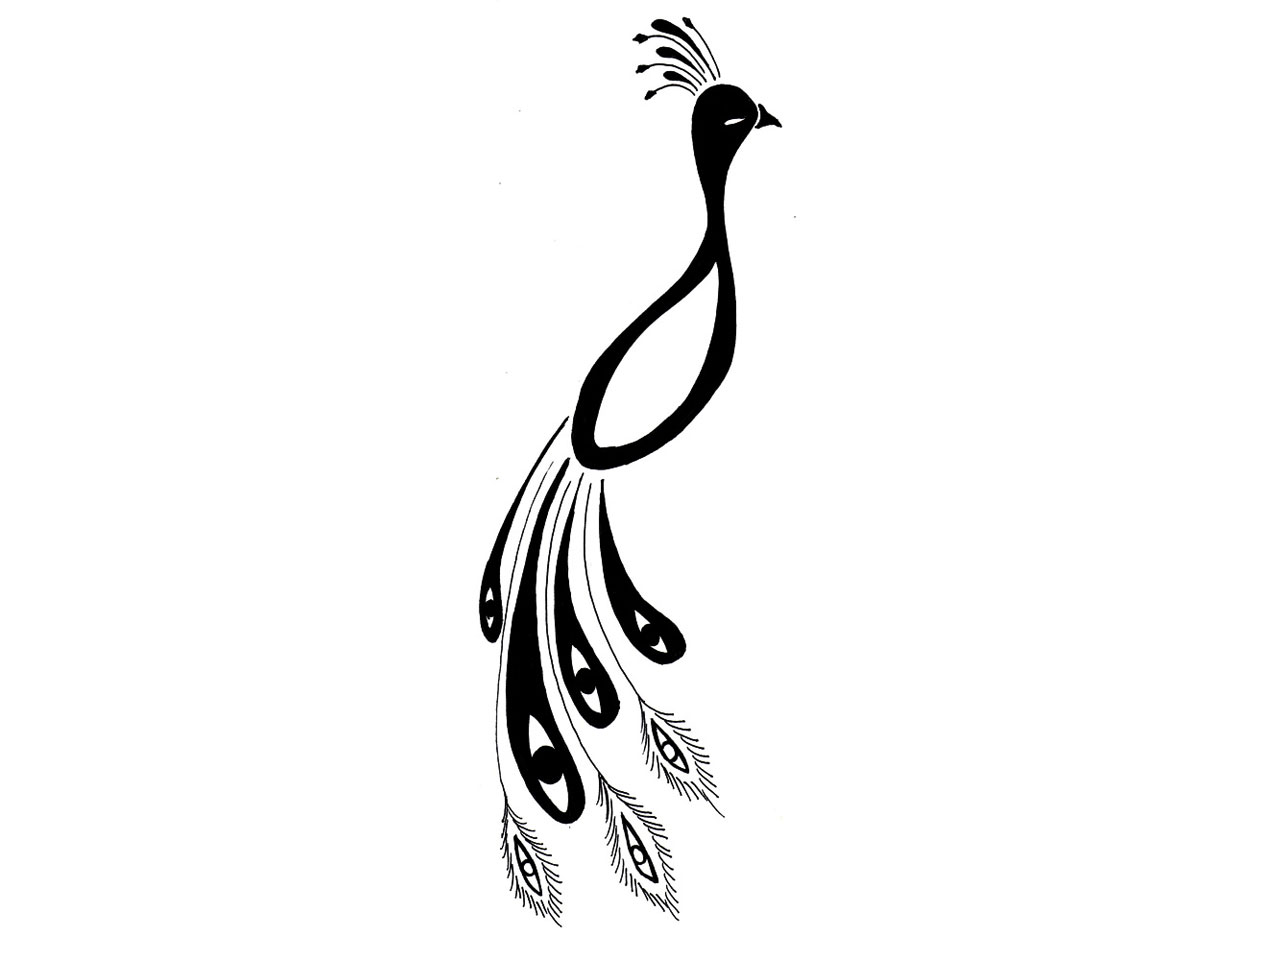 Peacock Feather Border Designs | Free download best Peacock Feather